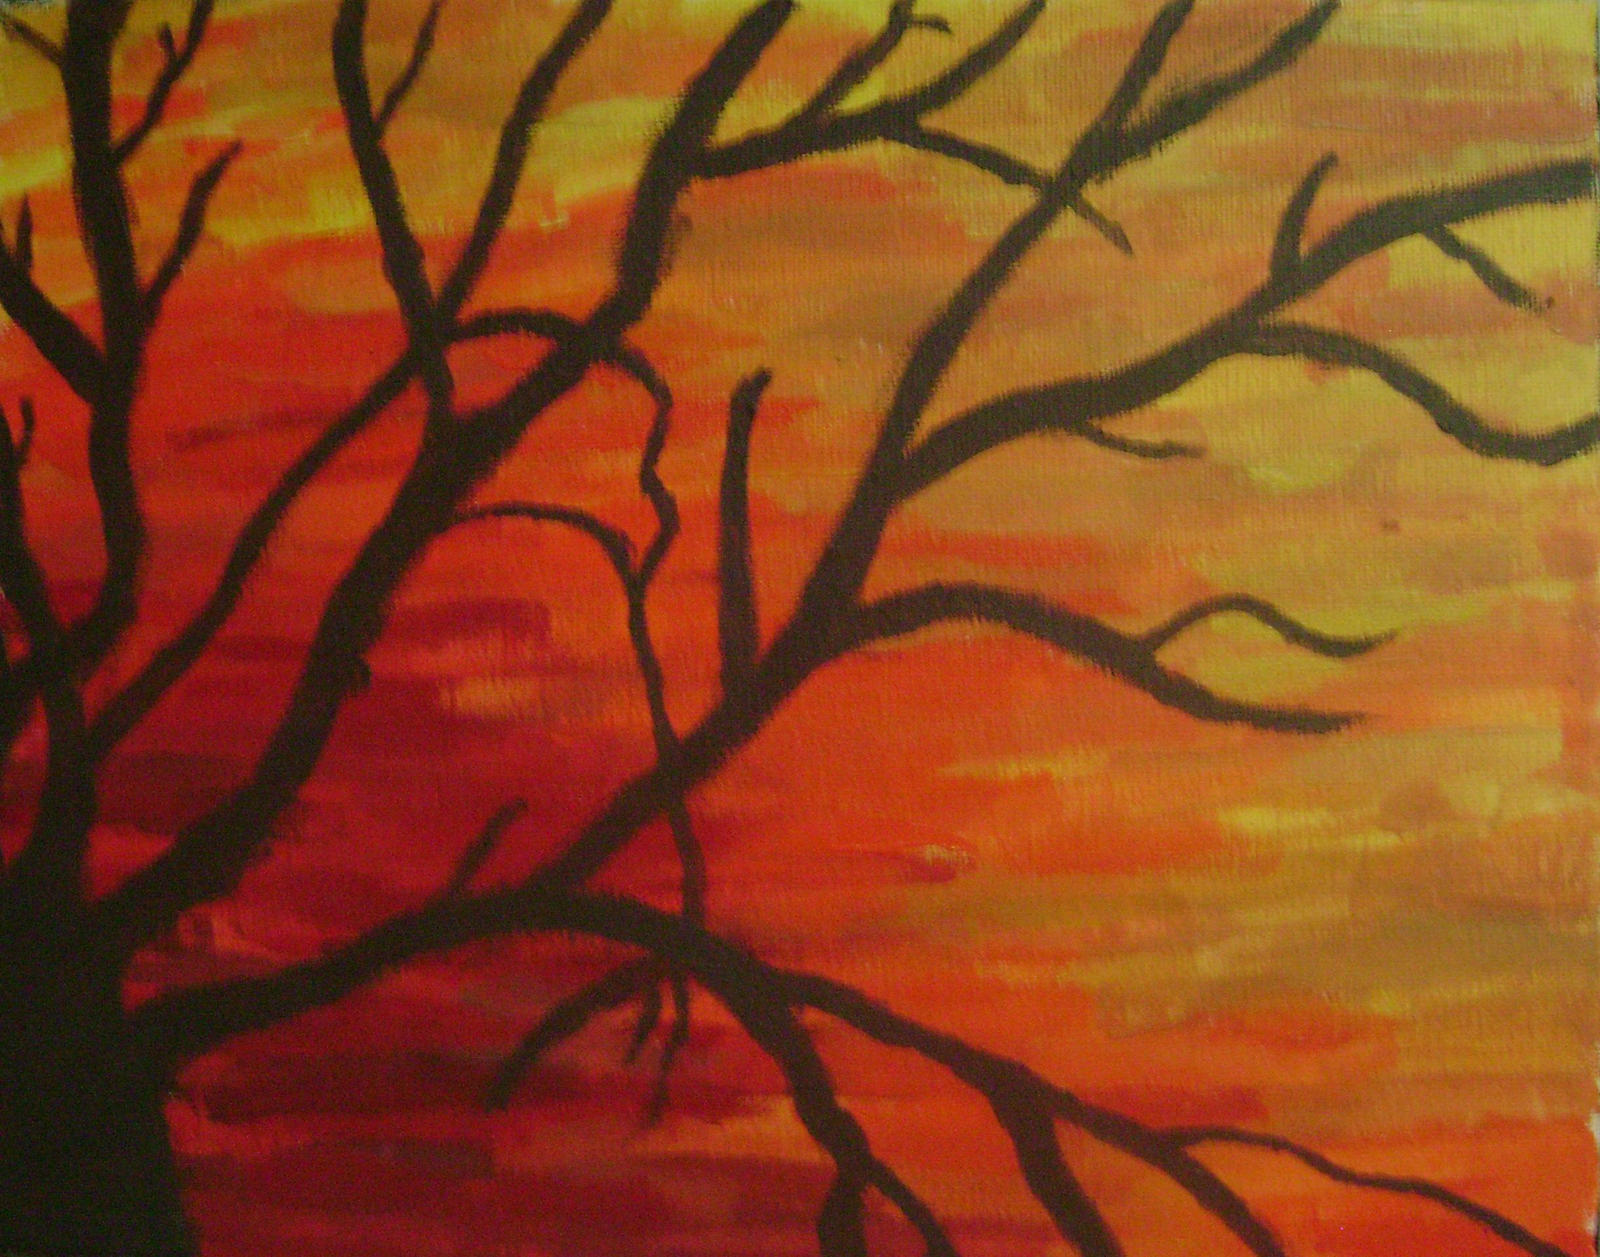 Silhouette tree oil painting by pokey274 on DeviantArt